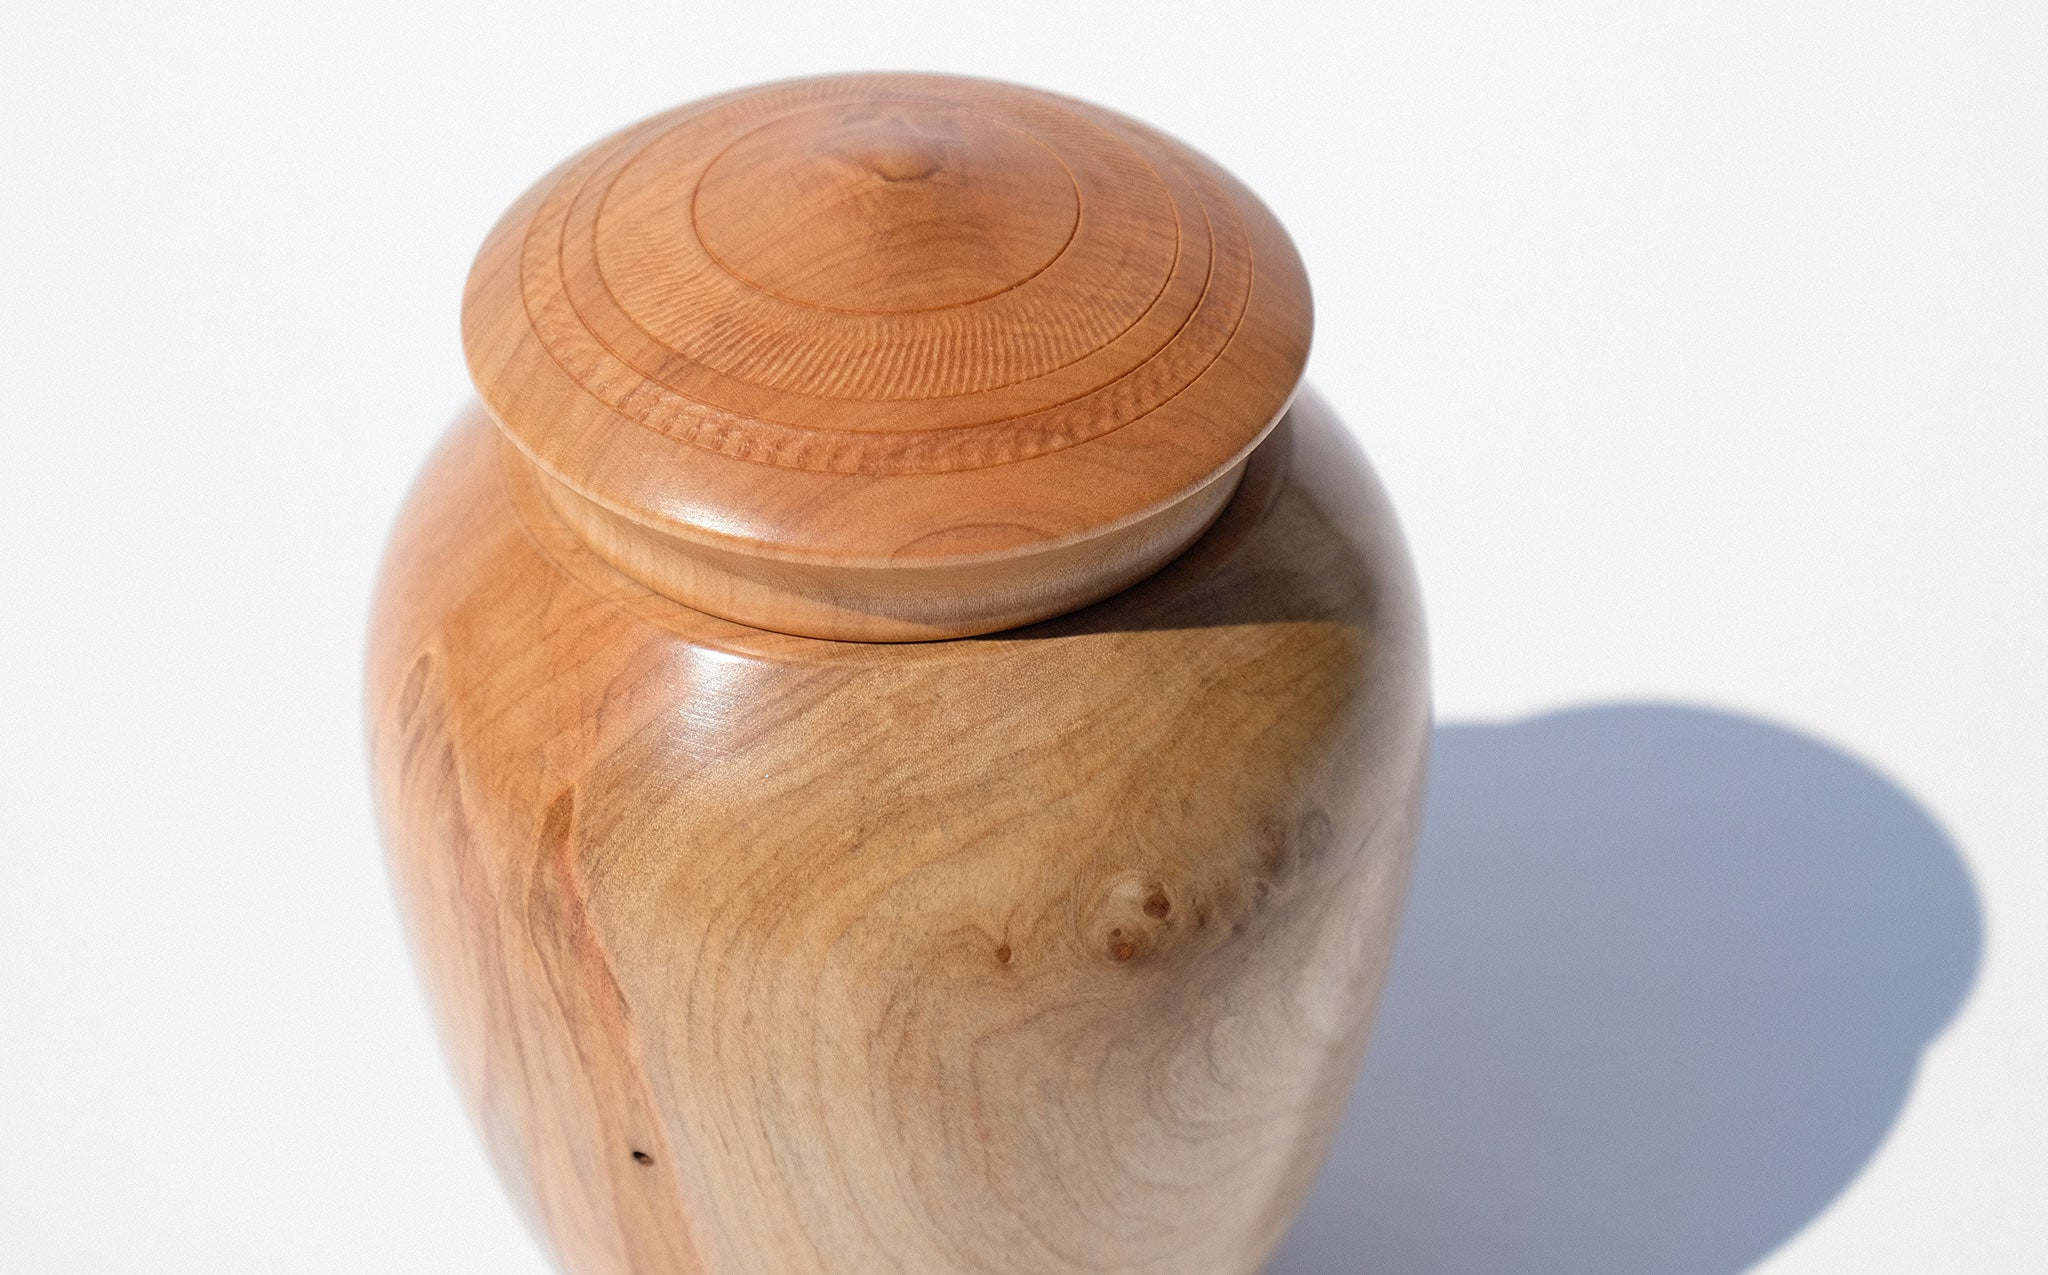 Bruce Perlmutter Hand Lathed Maple Vessel